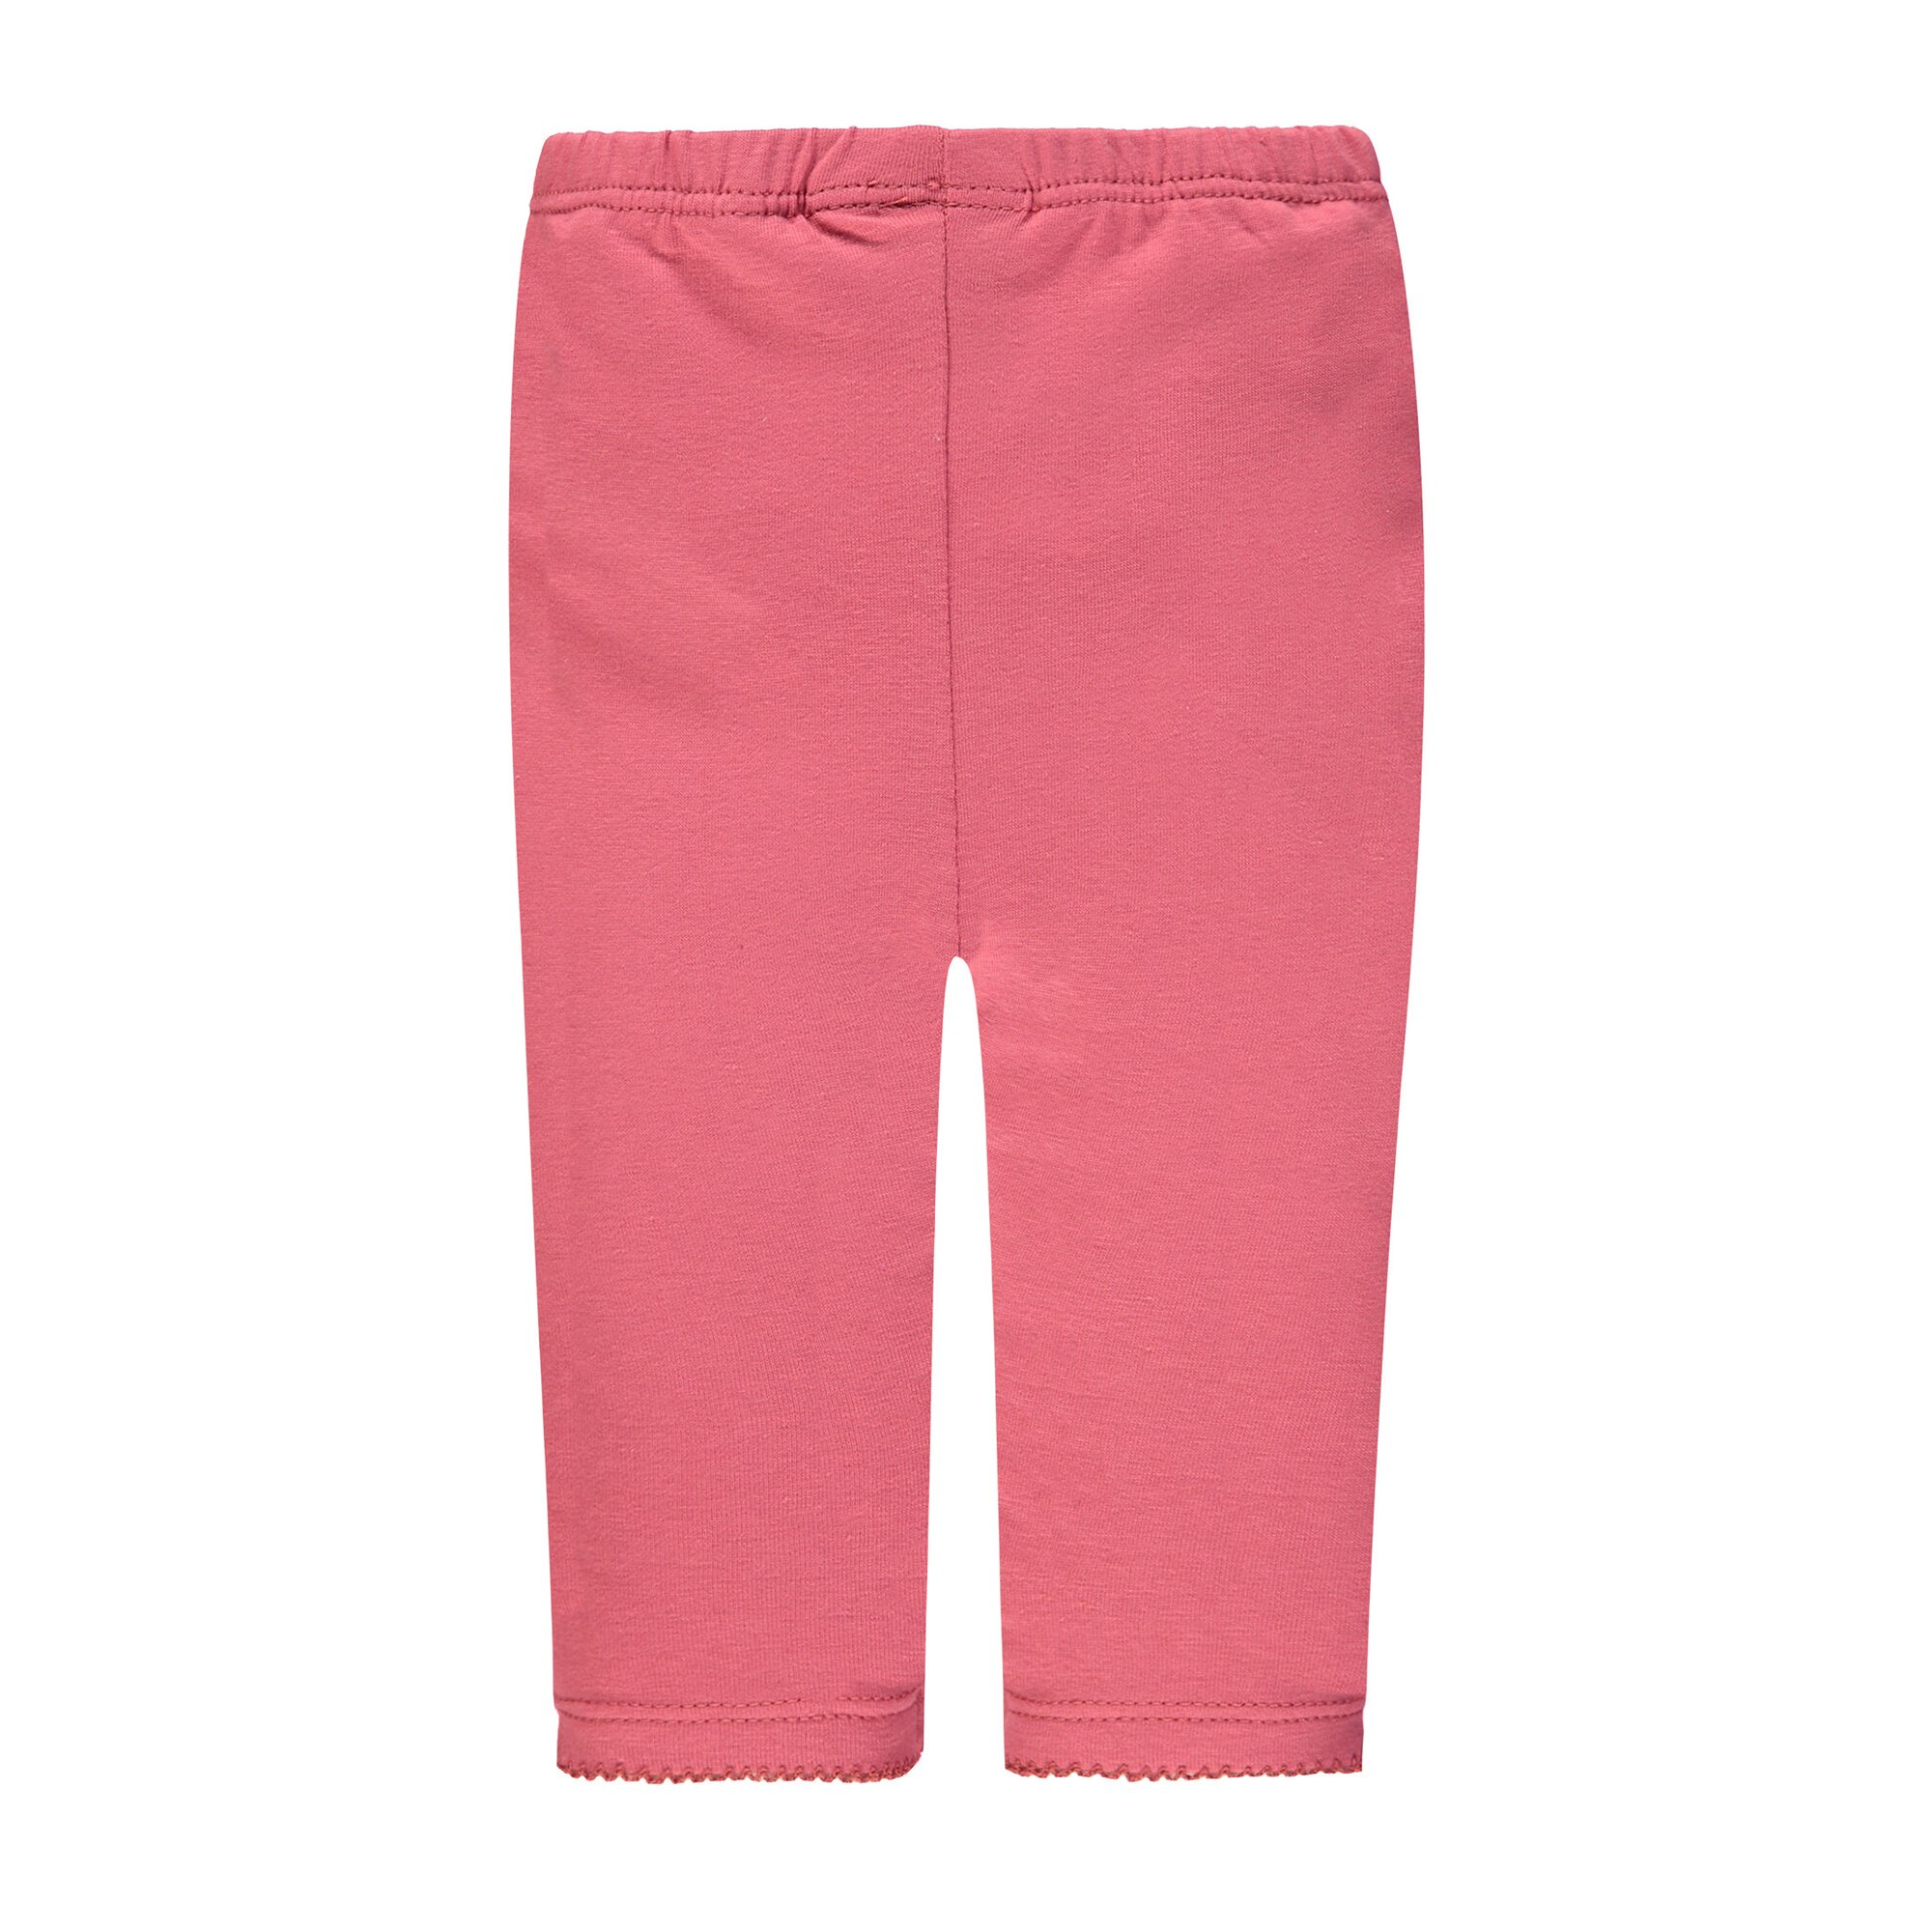 bellybutton-basic-leggings-aus-baumwoll-stretch, 15.95 EUR @ babywalz-de